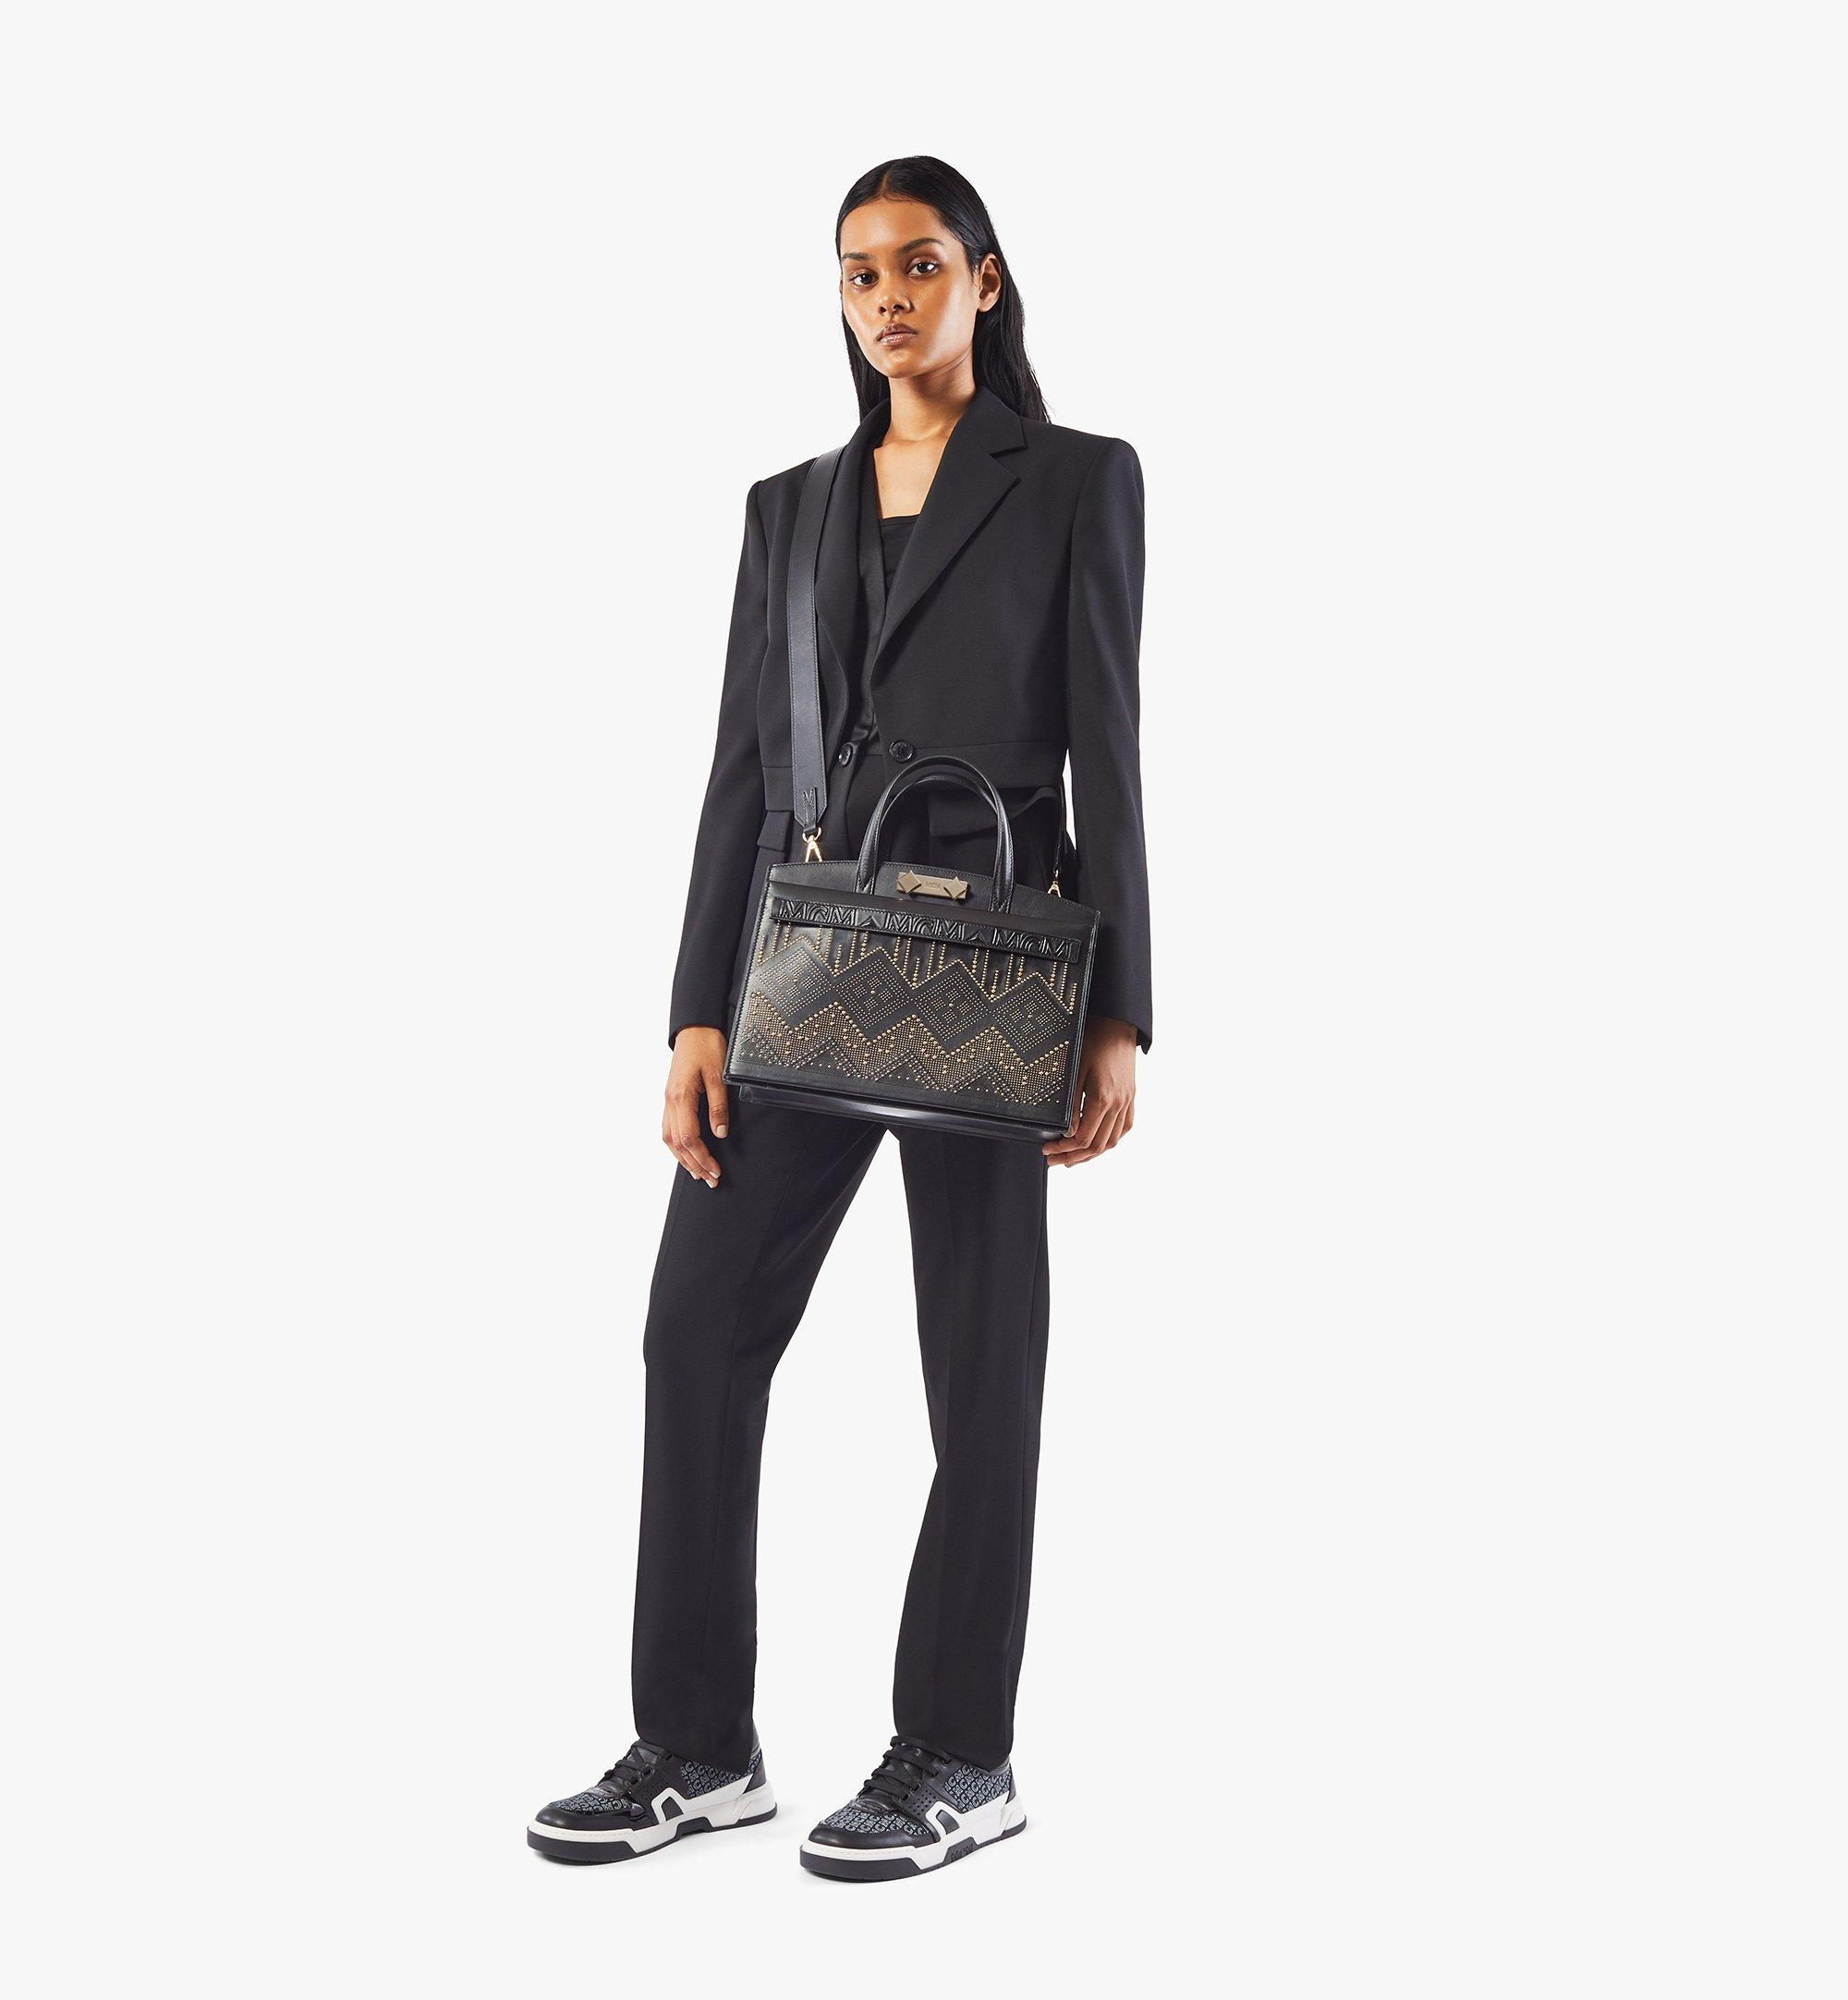 MCM Milano Lux Tote in Studded Leather Black MWTAADA03BK001 Alternate View 5